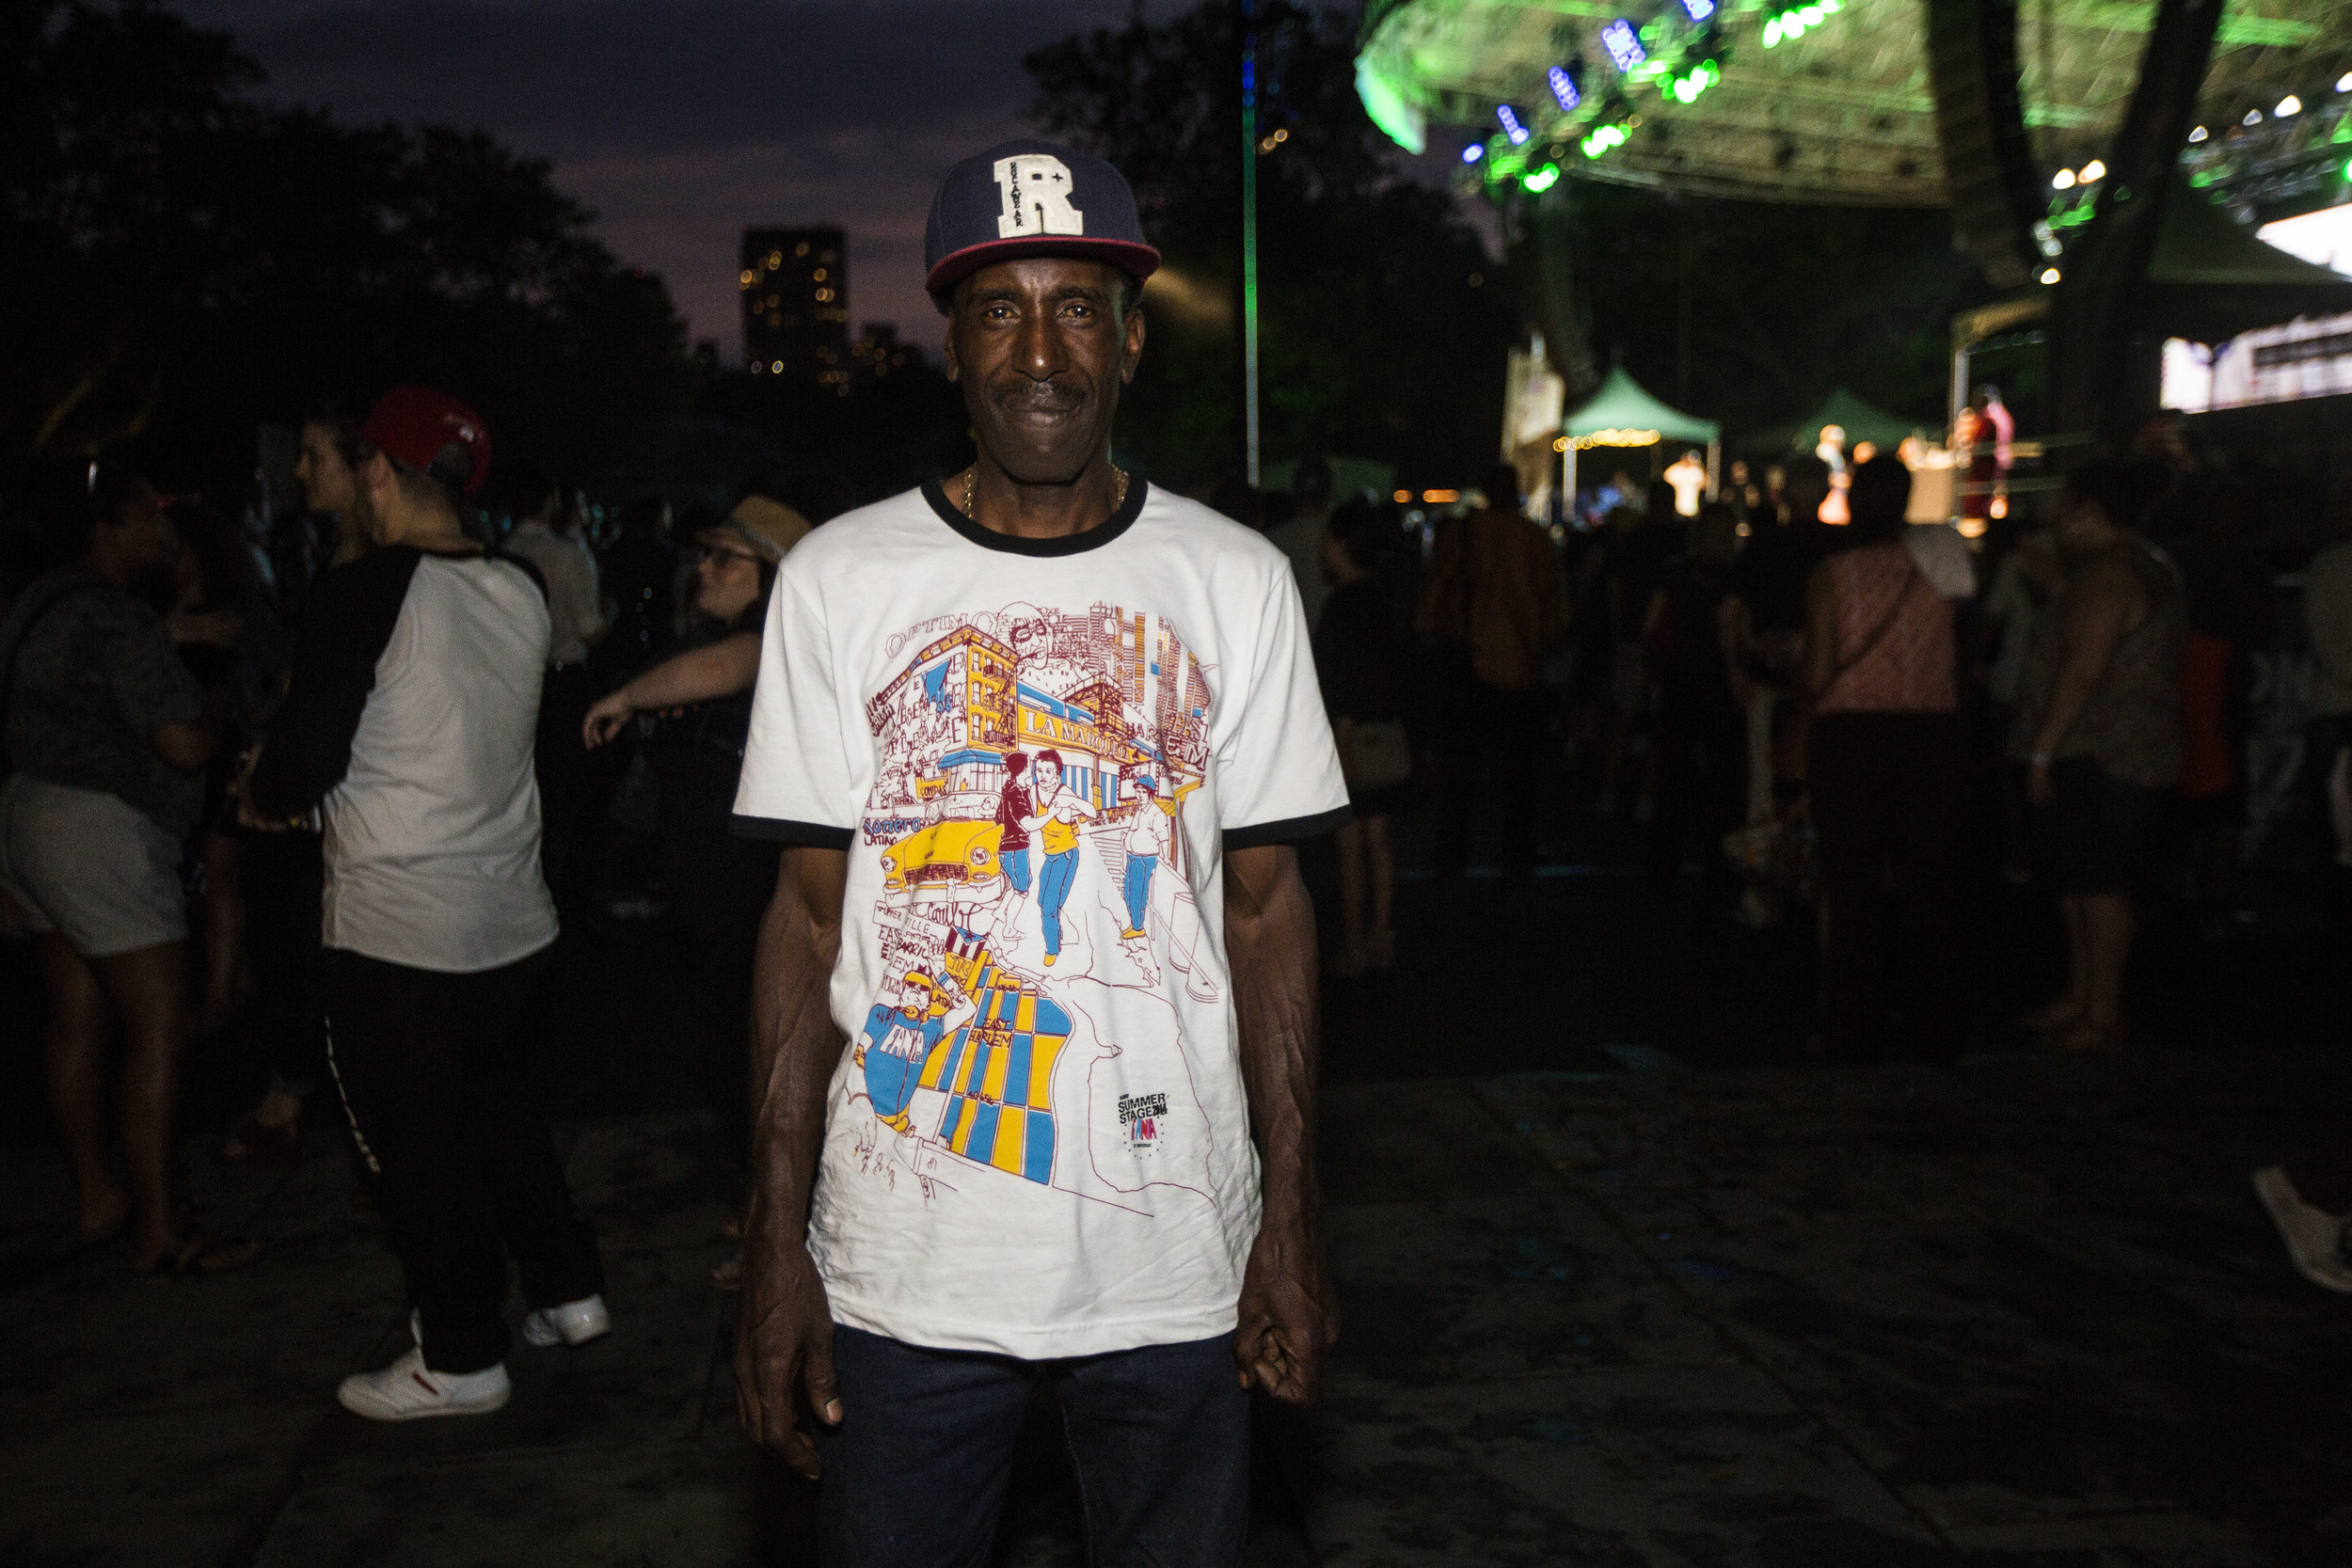 Fania at SummerStage T-Shirt